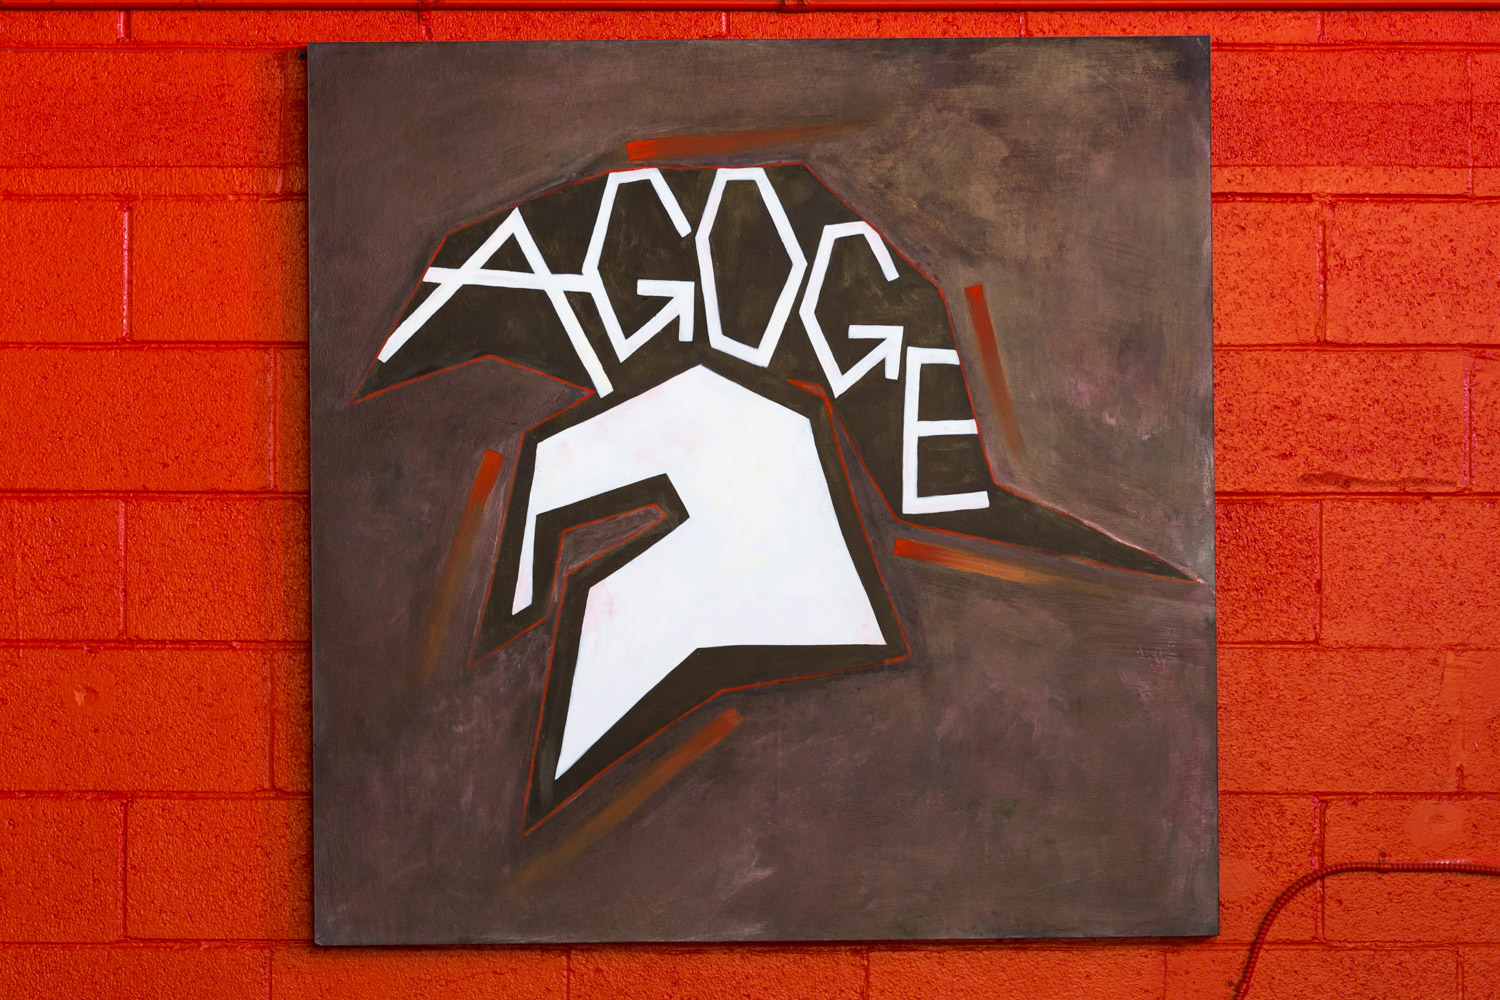 Agoge Fitness - Birmingham AL Commercial Photography